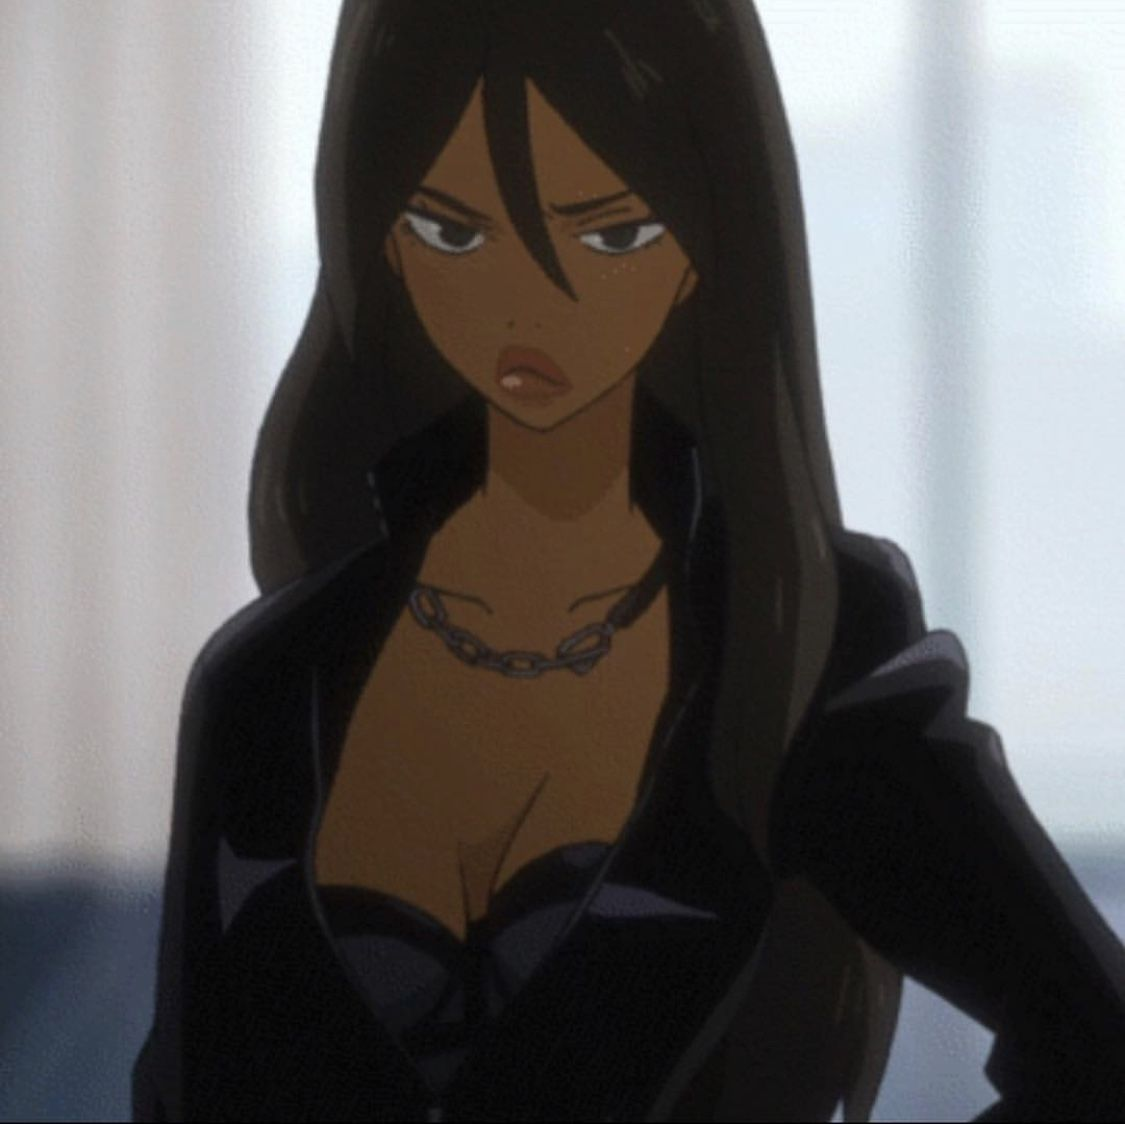 Pin By Jesus Christ On Toons Black Anime Characters Black Girl